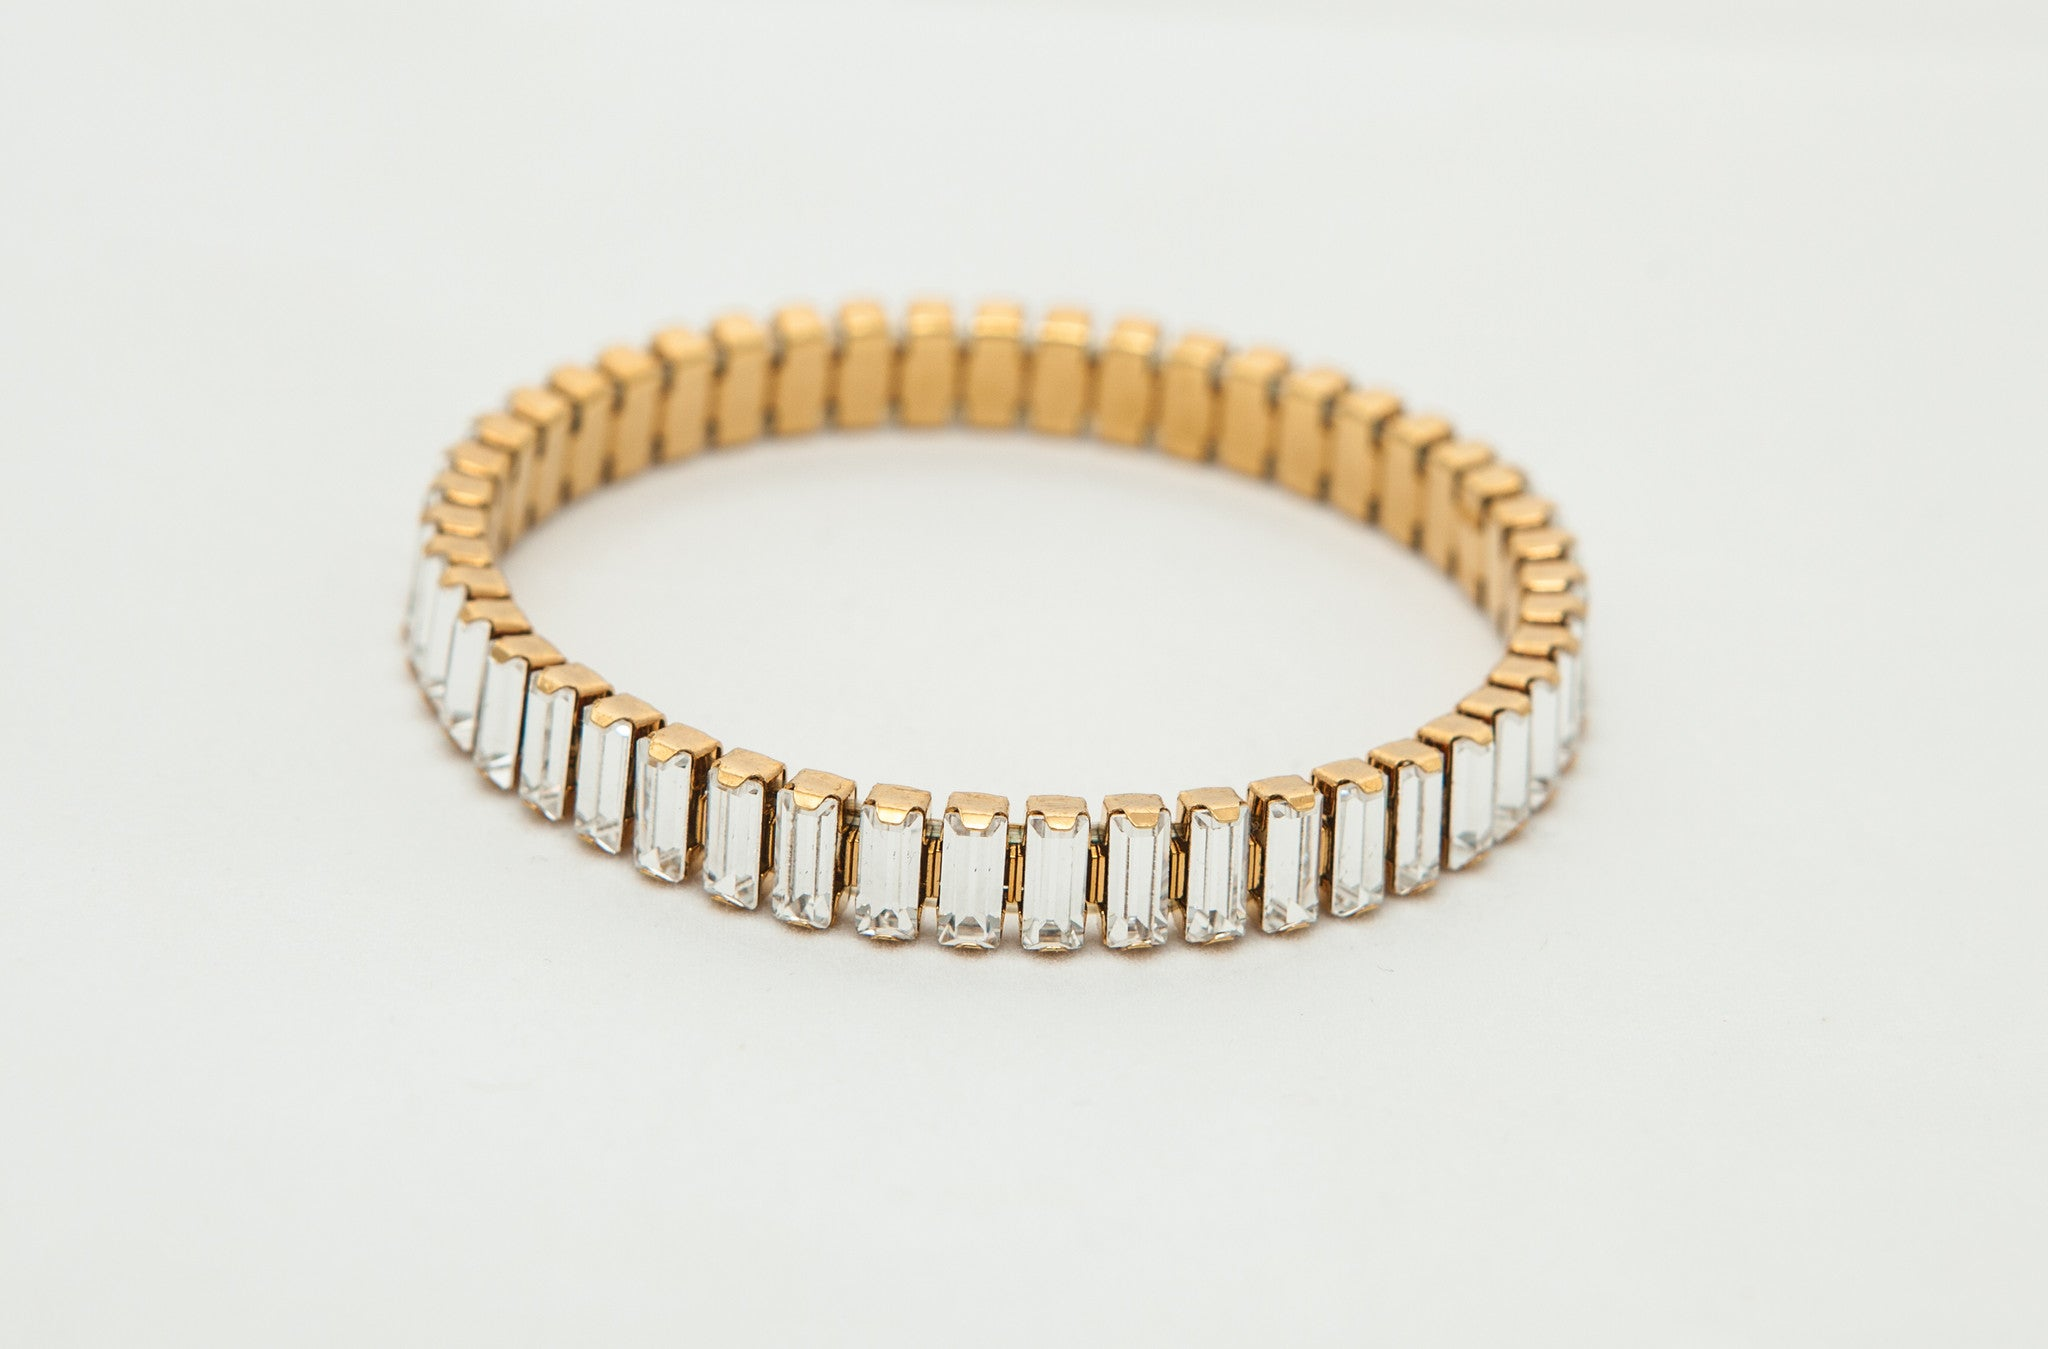 Gold Stretch Bracelet with Swarovski Baguette Crystals - Creative Crystal